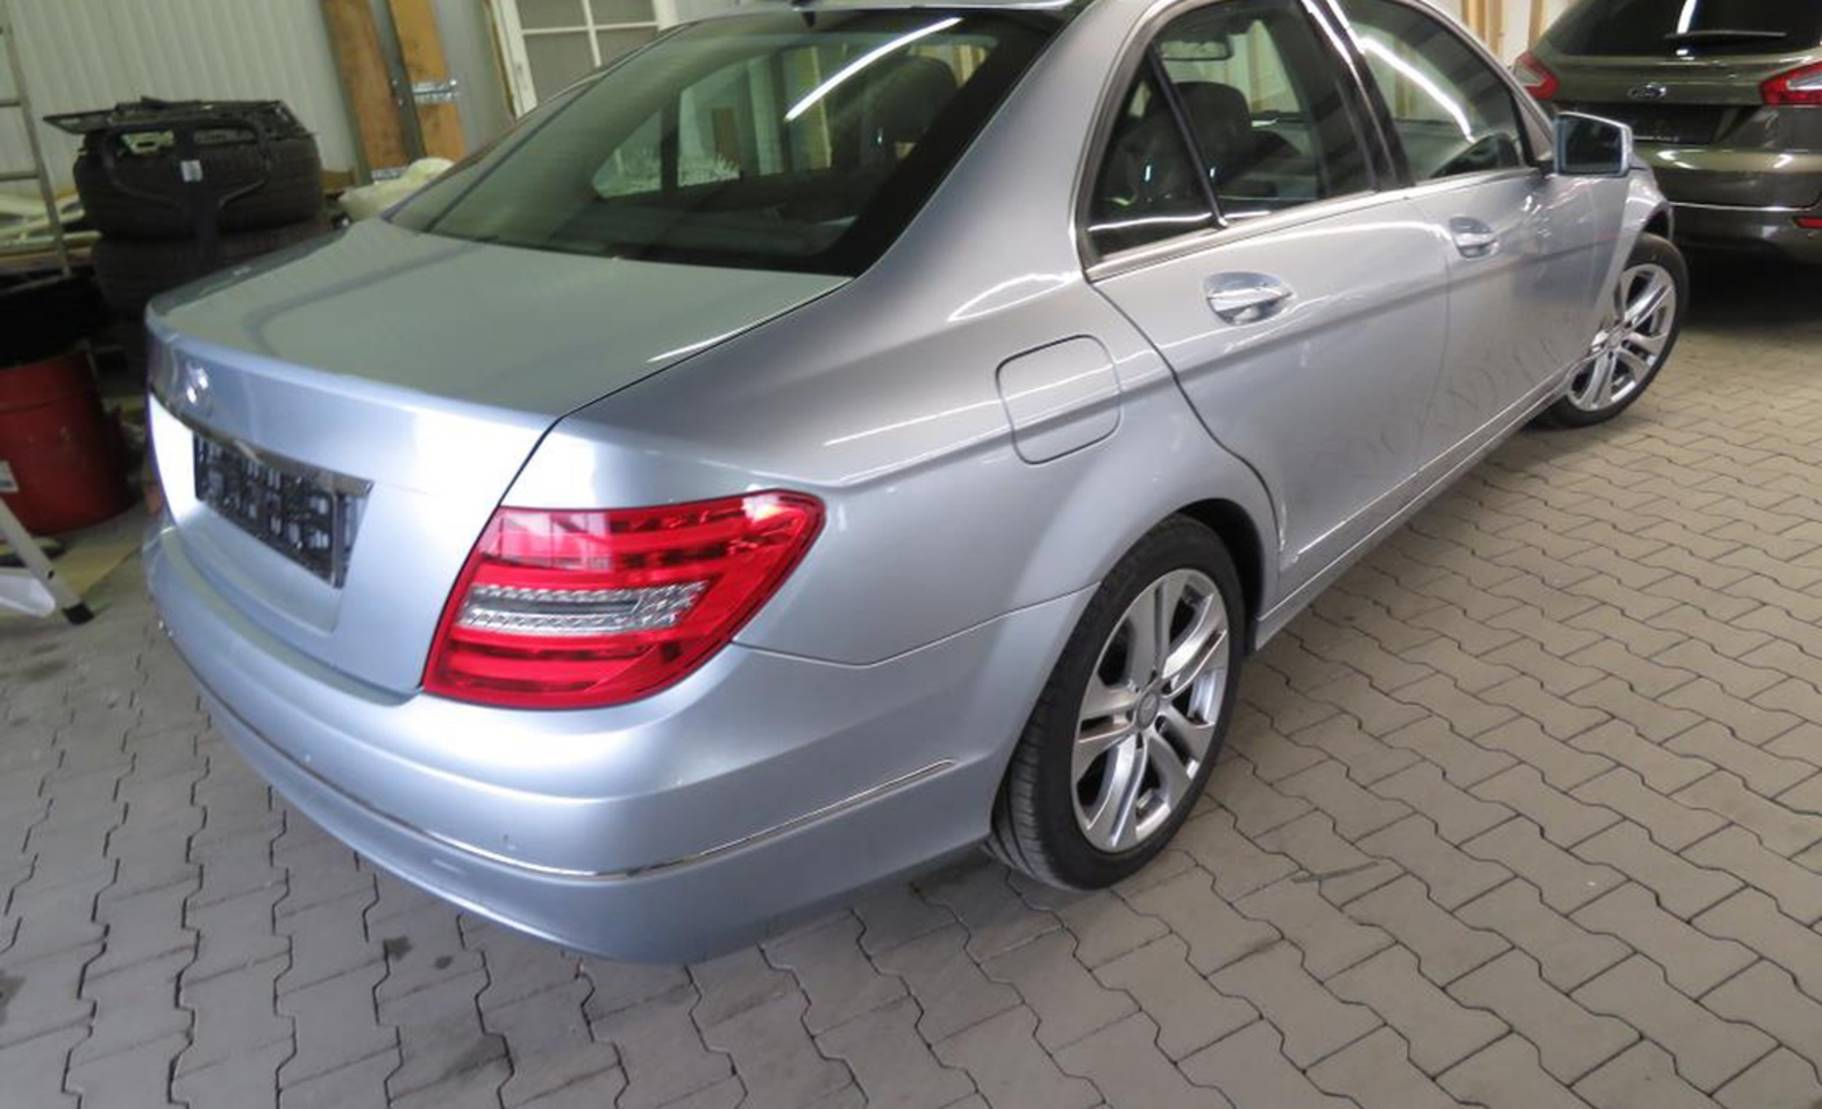 Mercedes-Benz C-Klasse 200 (BlueEFFICIENCY) 7G-TRONIC, Avantgarde (505574) detail2